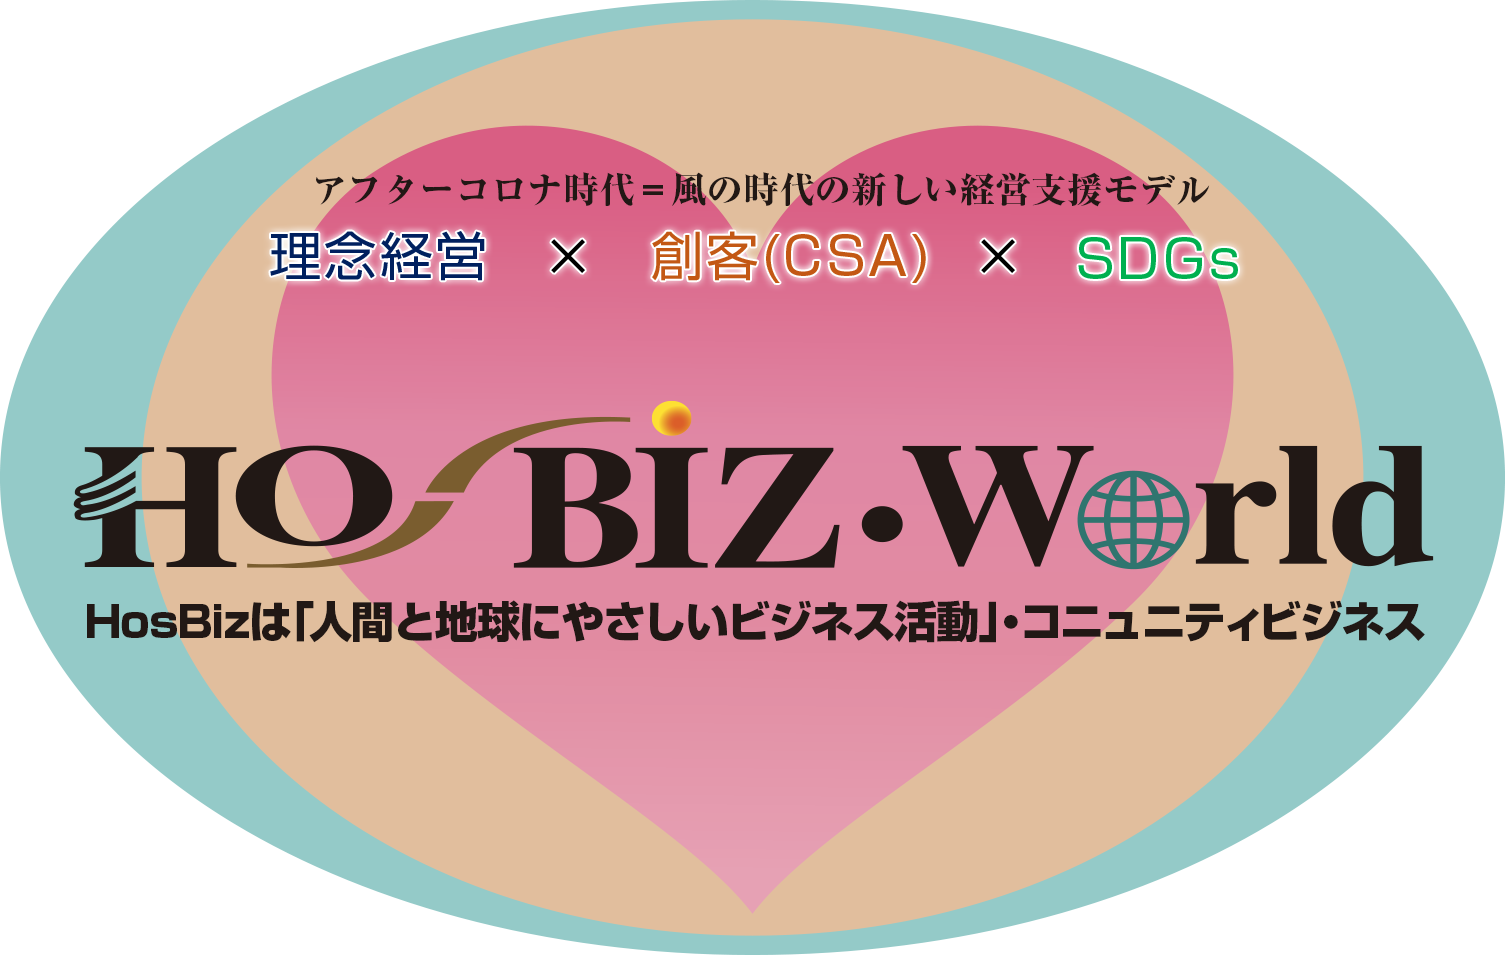 HosBiz・World